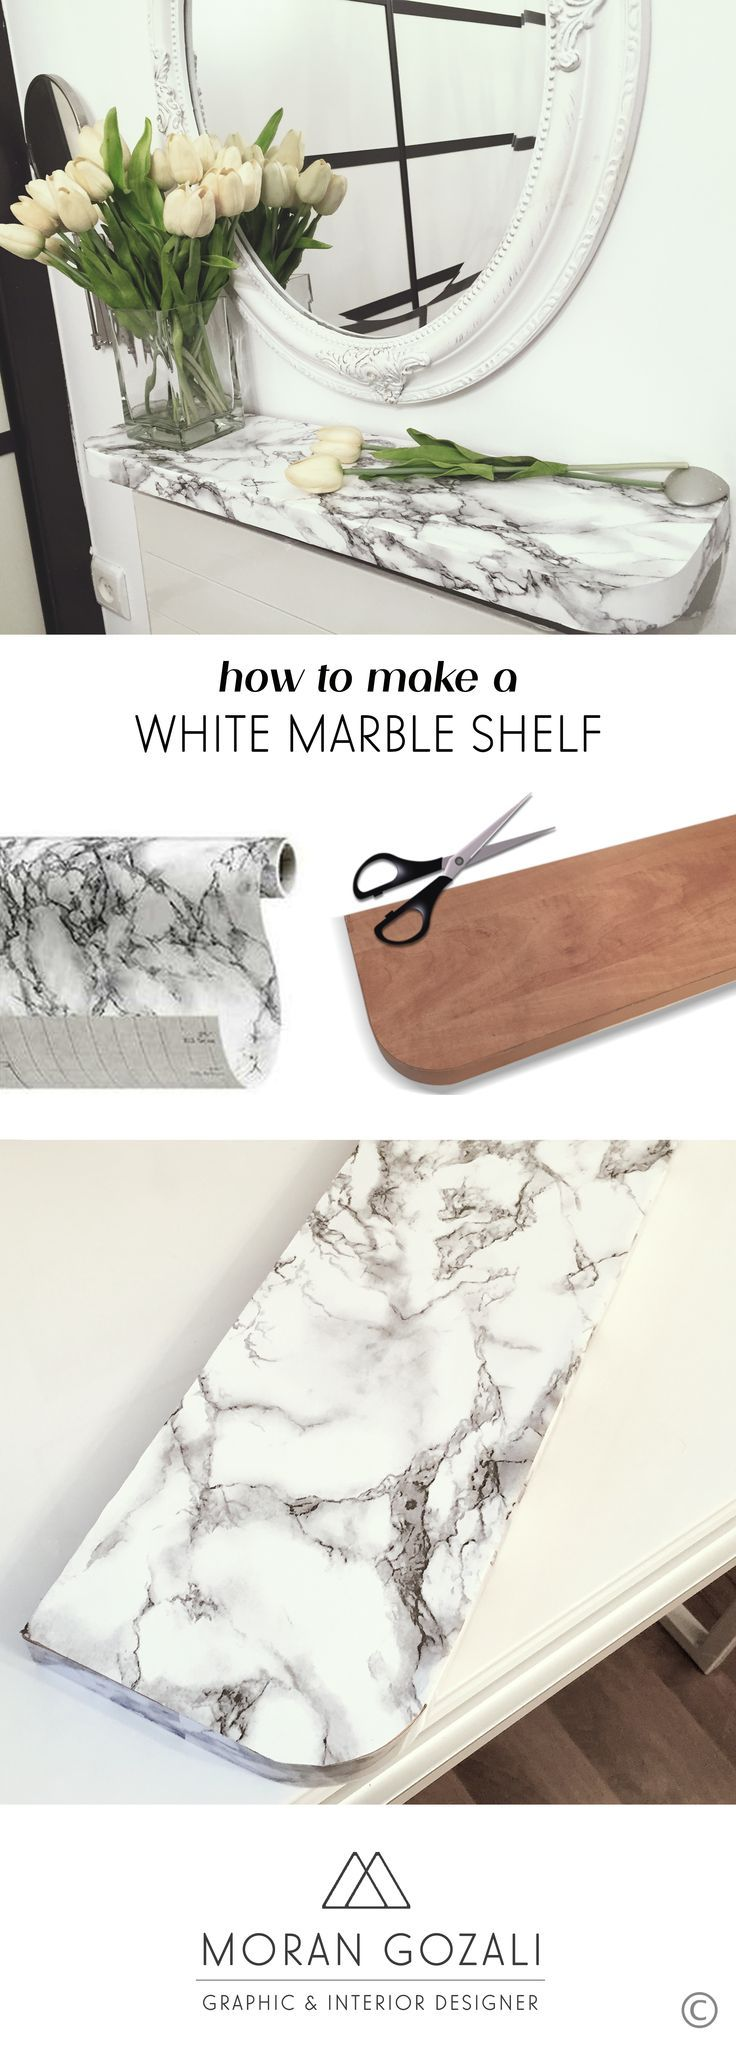 #‎Marble‬ContactPaper #DIY #Doityourself #furniture #ideas #fur #gold #white #ideas #interiordesign